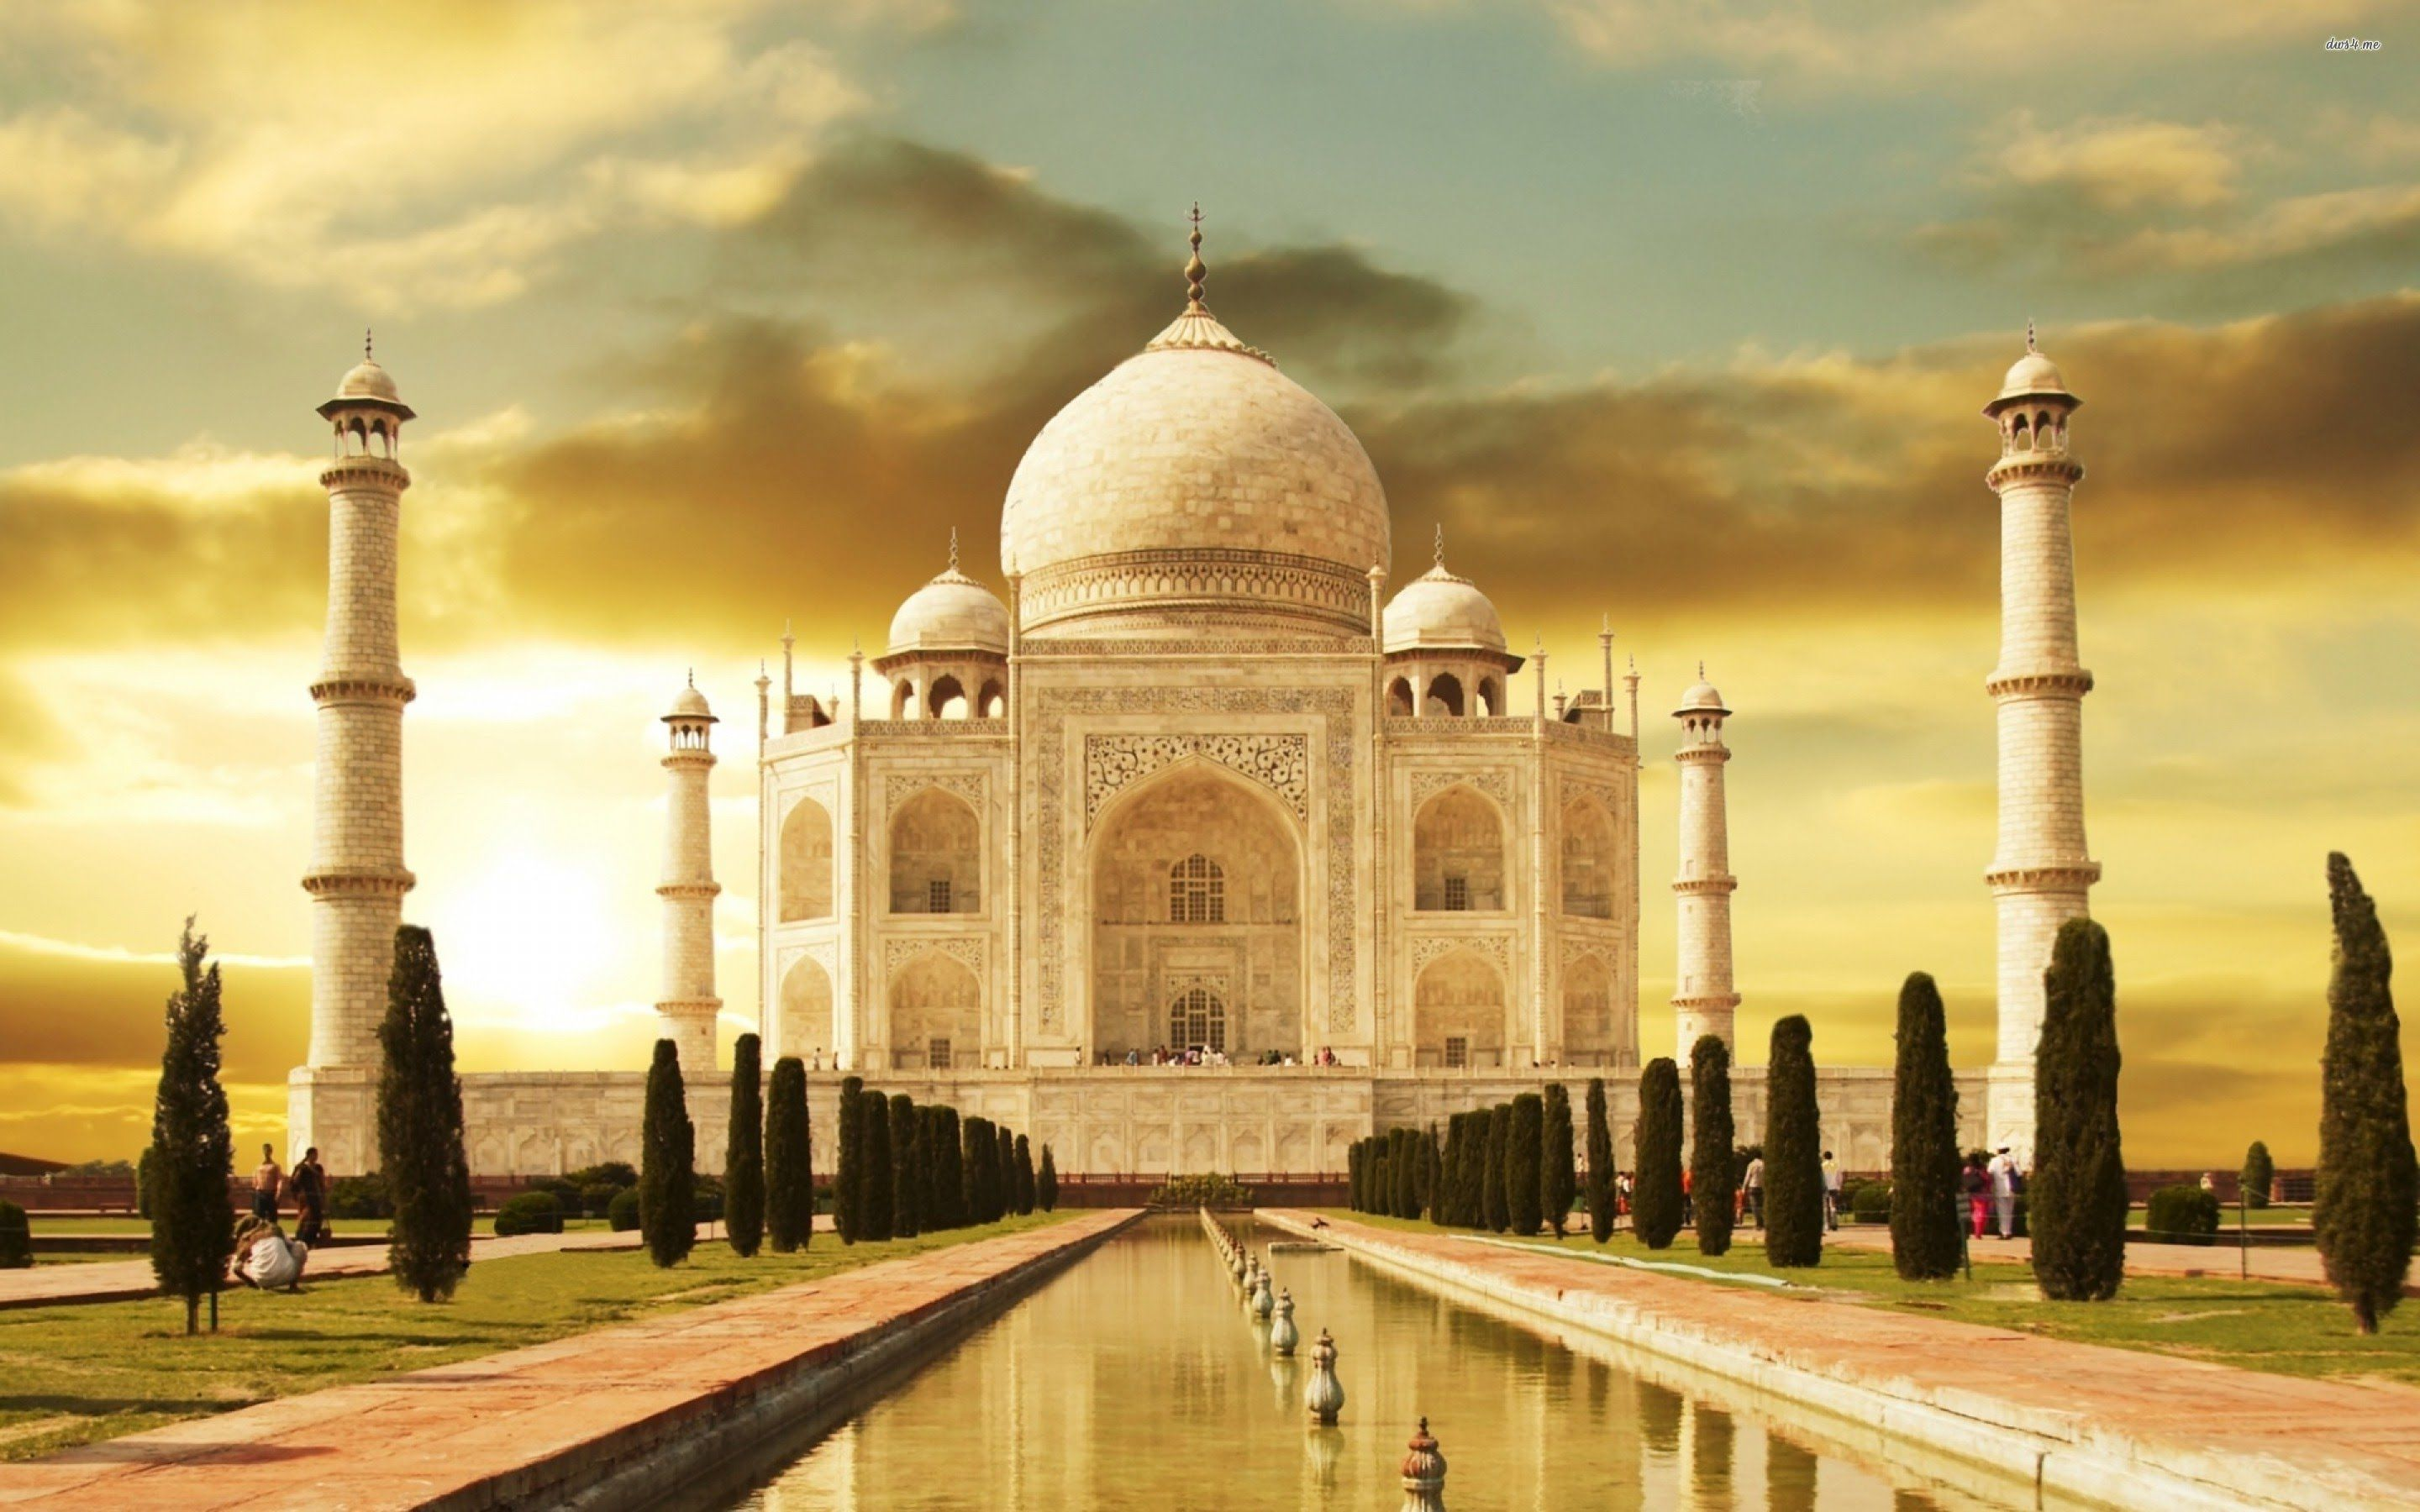 Top 10 Places To Visit In India Top 10 Famous Monuments In India Top 10 Tourist Destinations In India Top 10 Famous Places In India Top 10 Histor Azie Zoeken